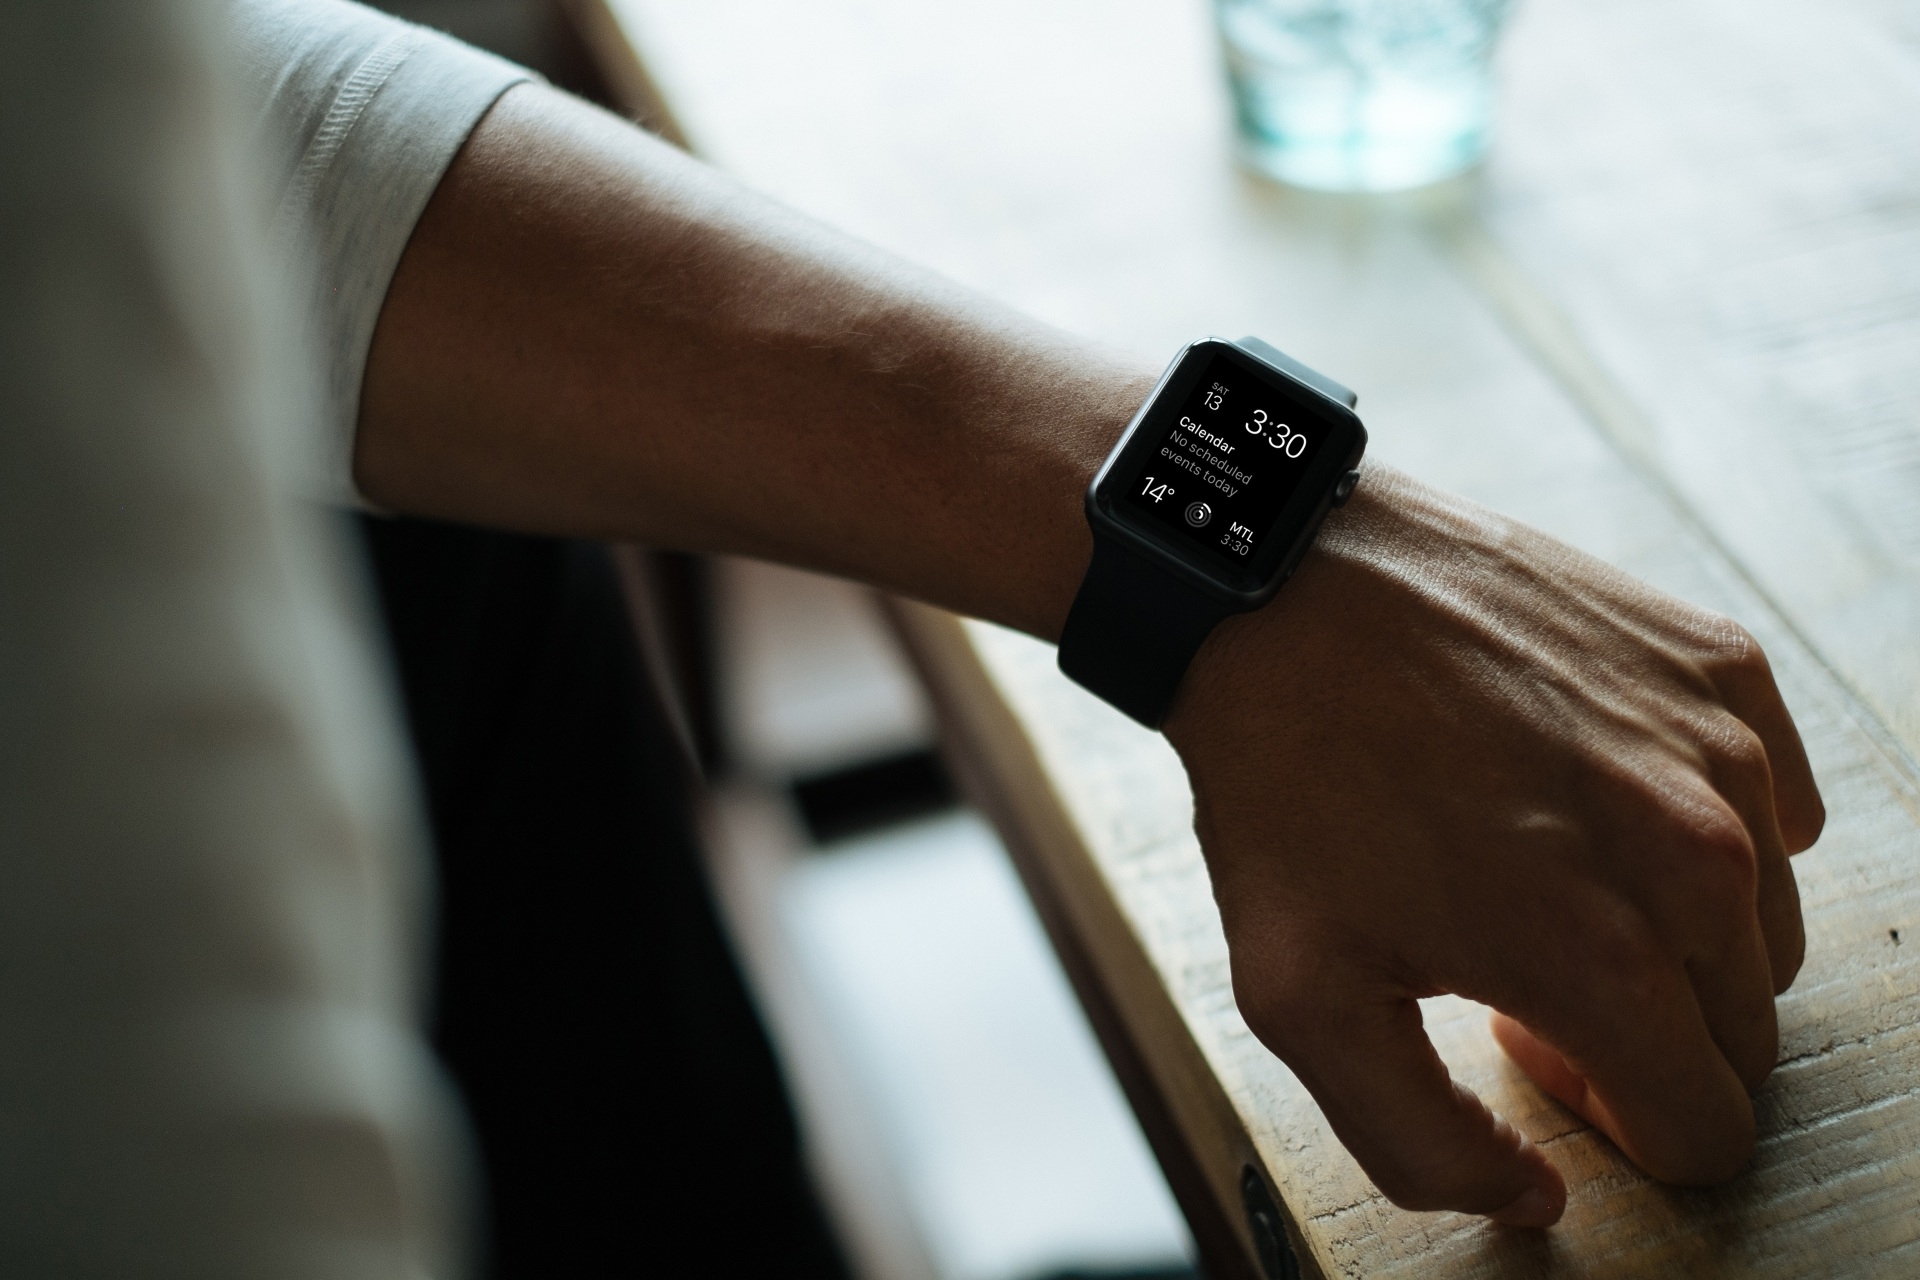 Apple Watch PEdro Topete Apple Blog Portugal (2)